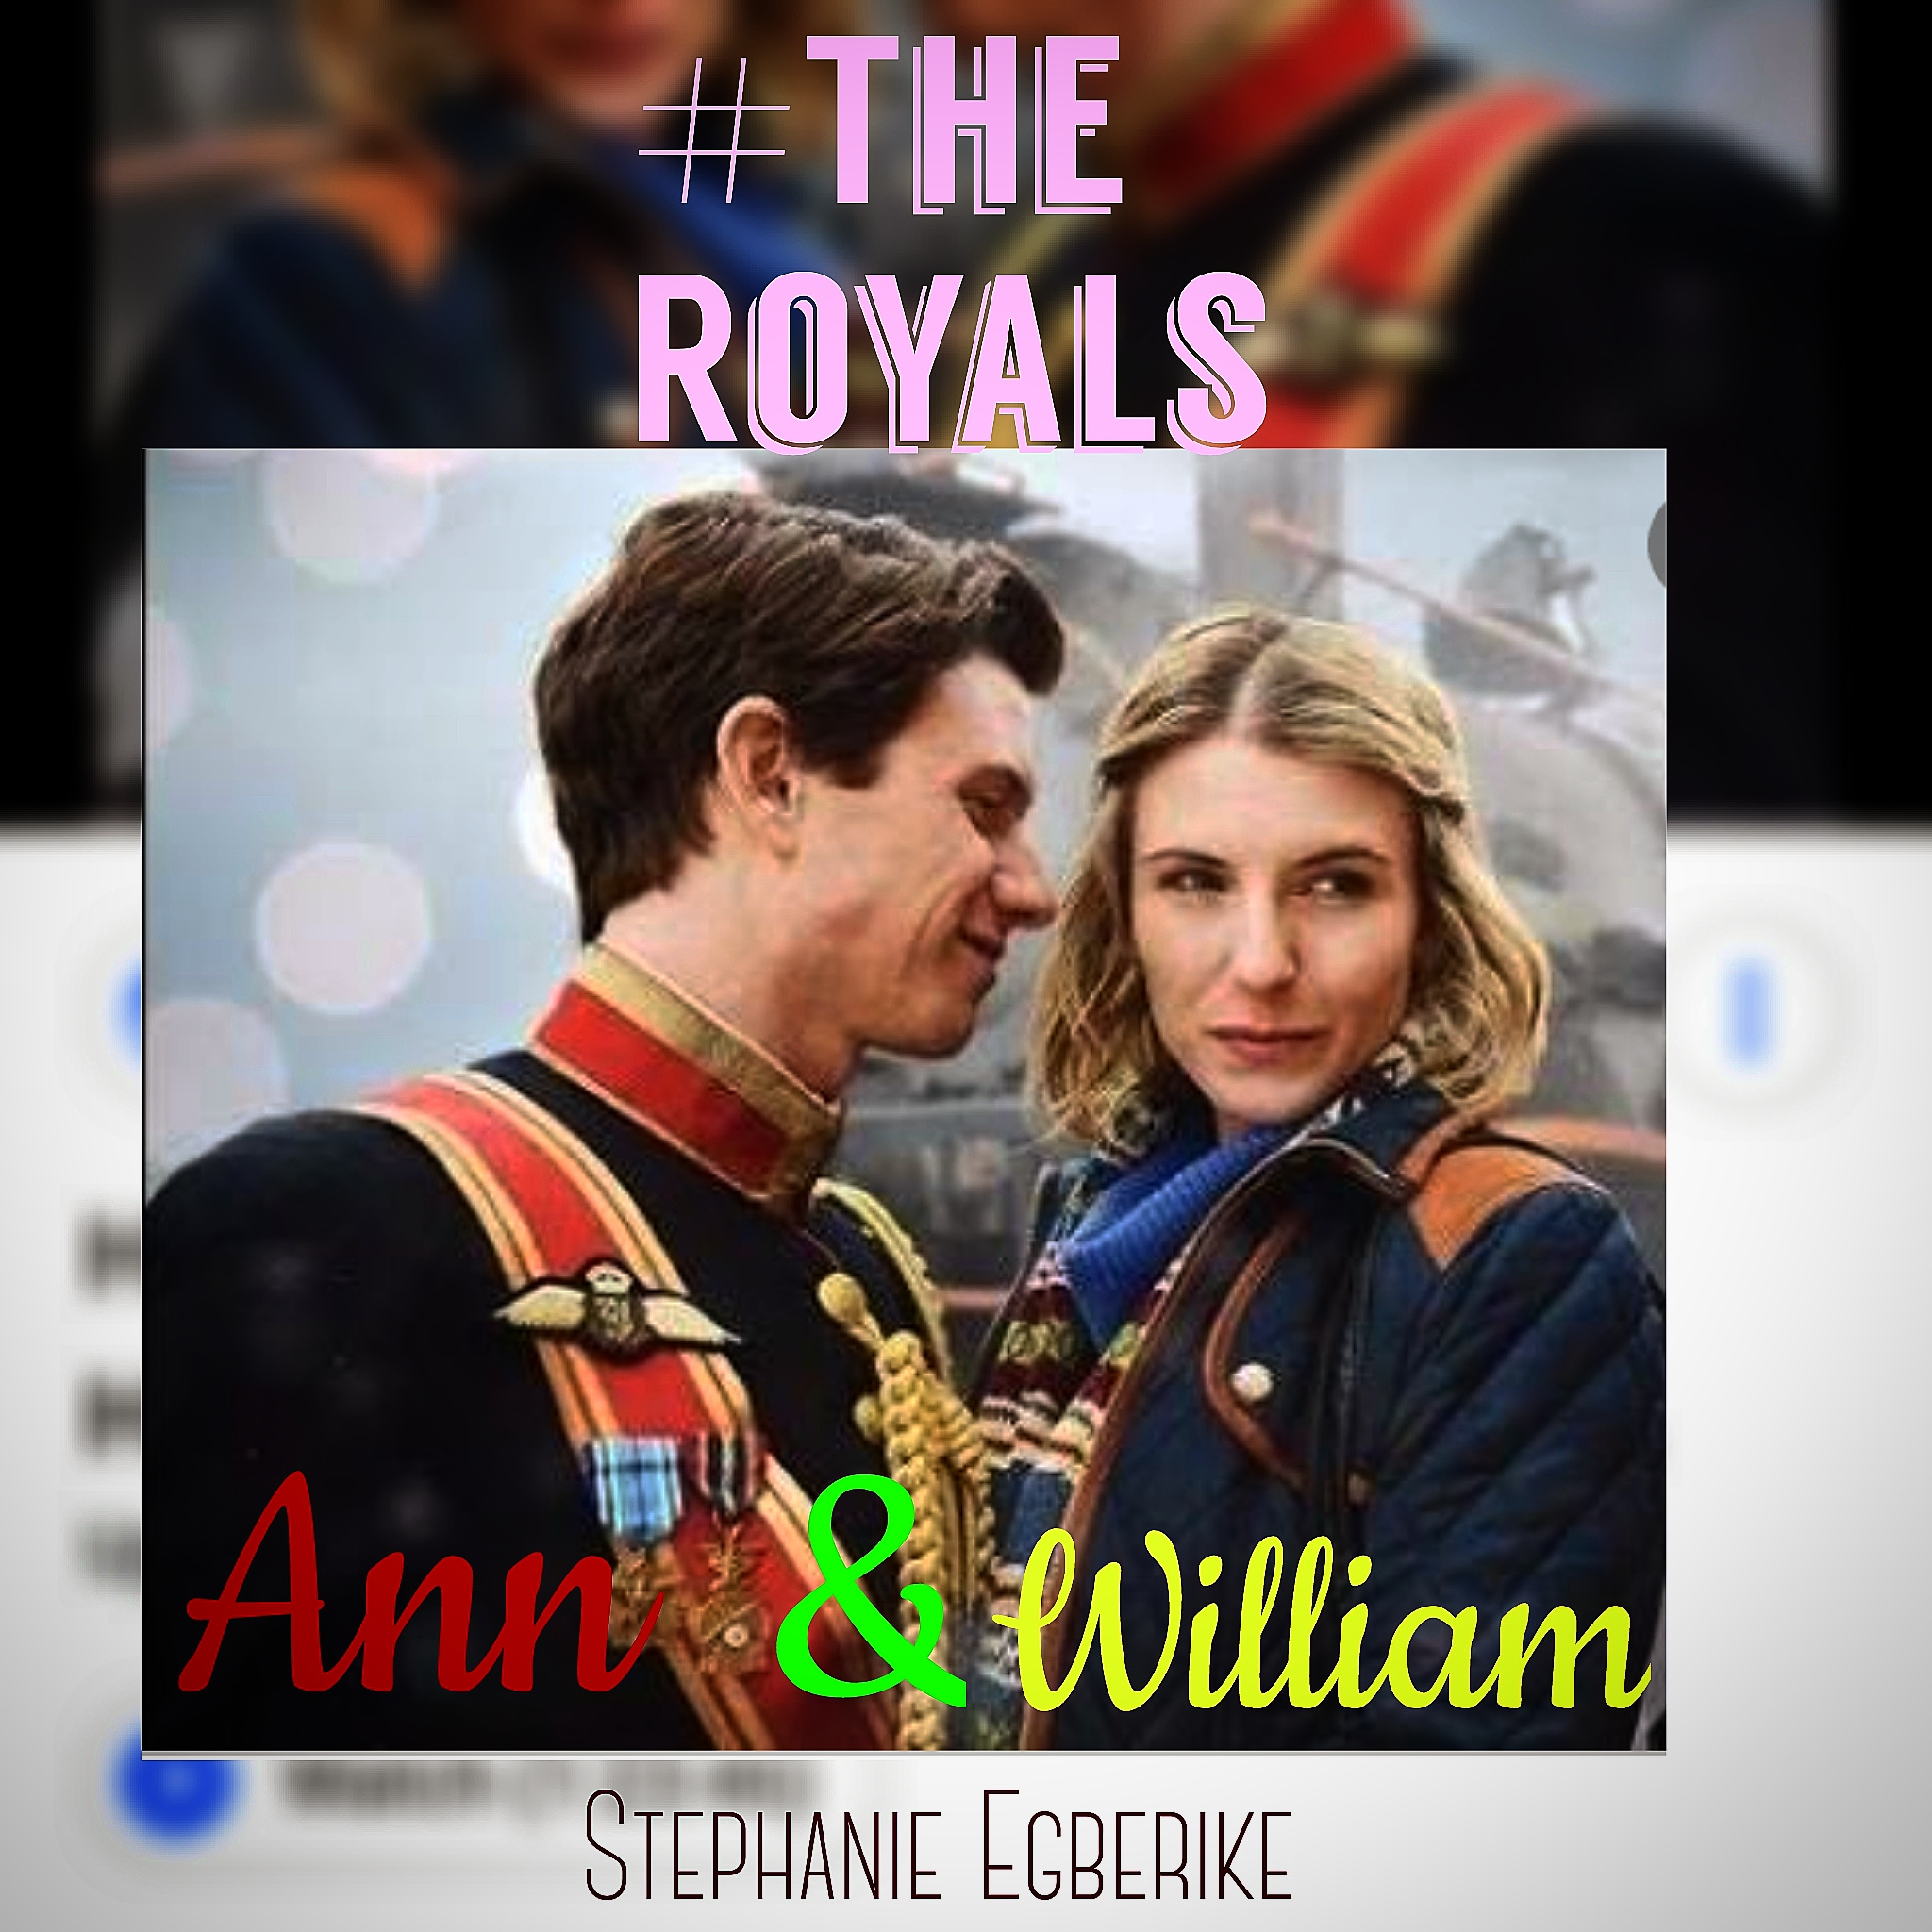 #THE ROYALS: ANNA & WILLIAMS CHP FIVE